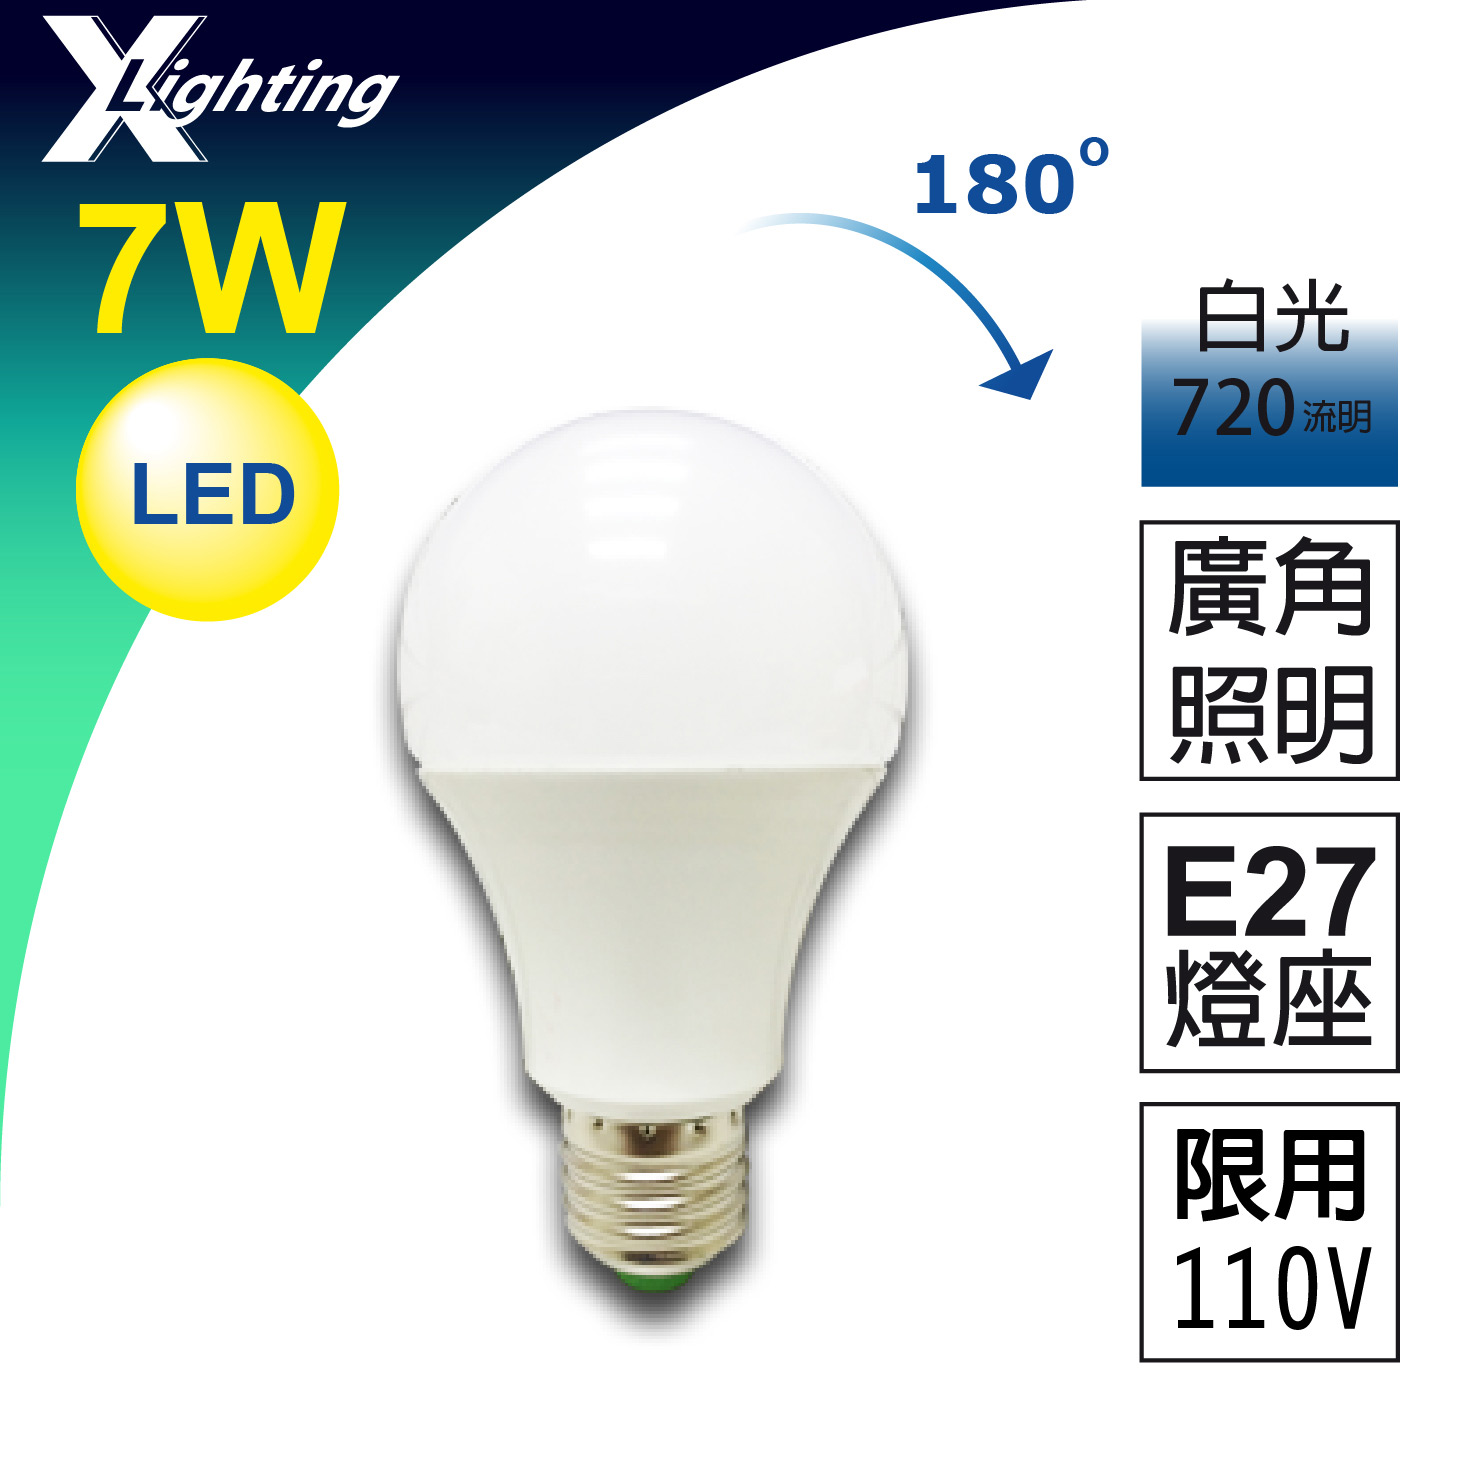 可調光 LED 7W E27(白光)燈泡 限110V EXPC X-LIGHTING(3W 5W 9W 10W 12W)